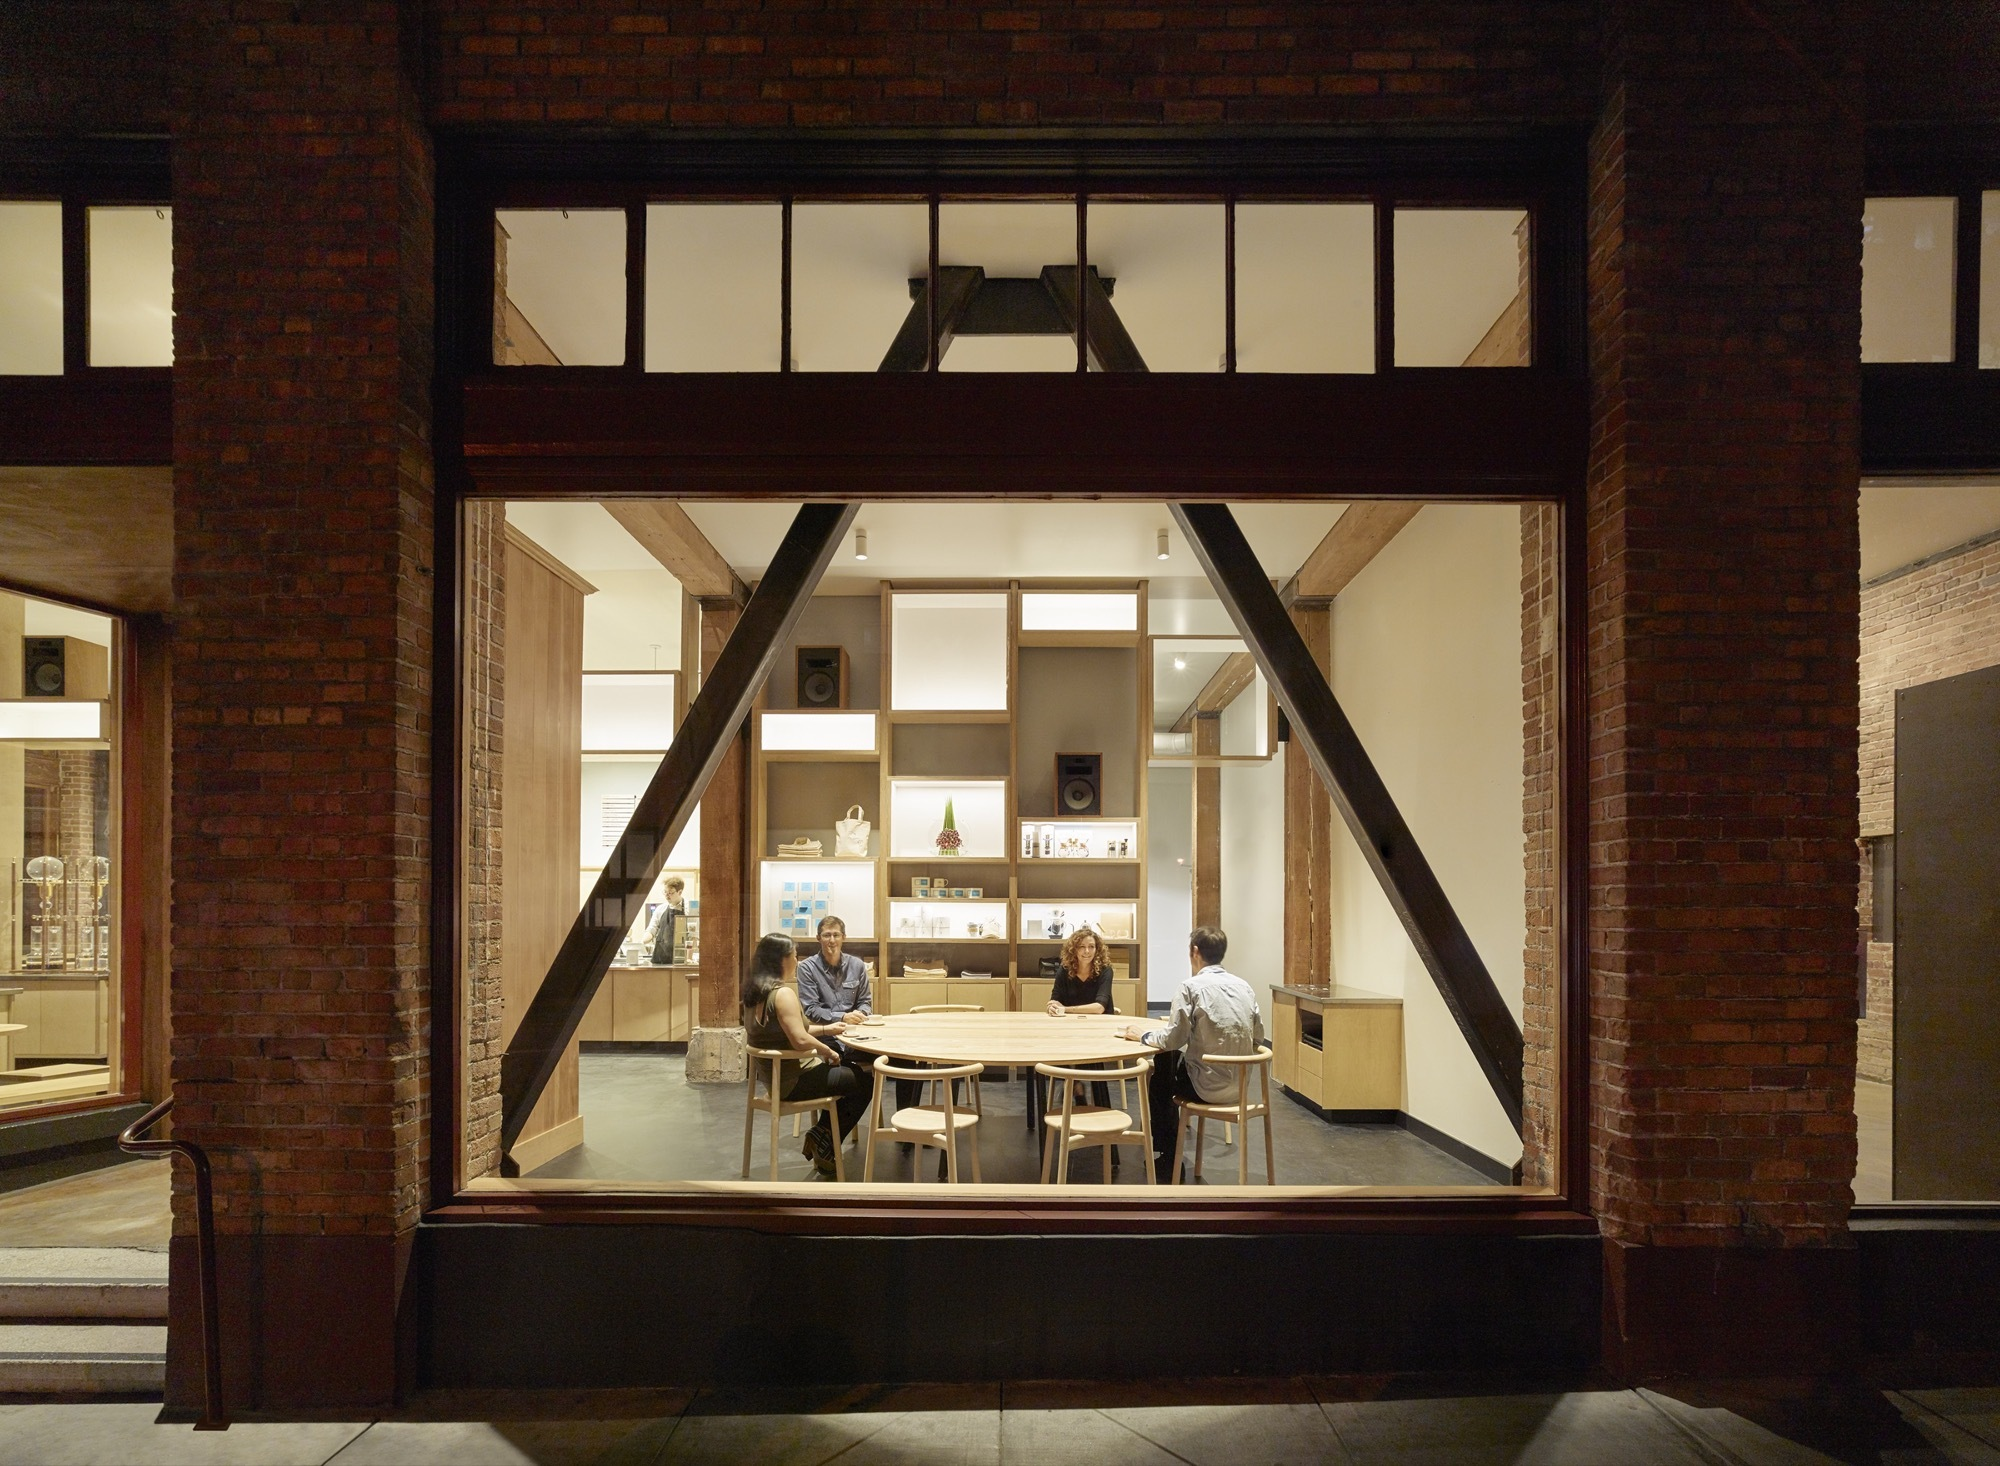 Original-appeal-of-the-warehouse-is-enhanced-with-the-new-cafe-design